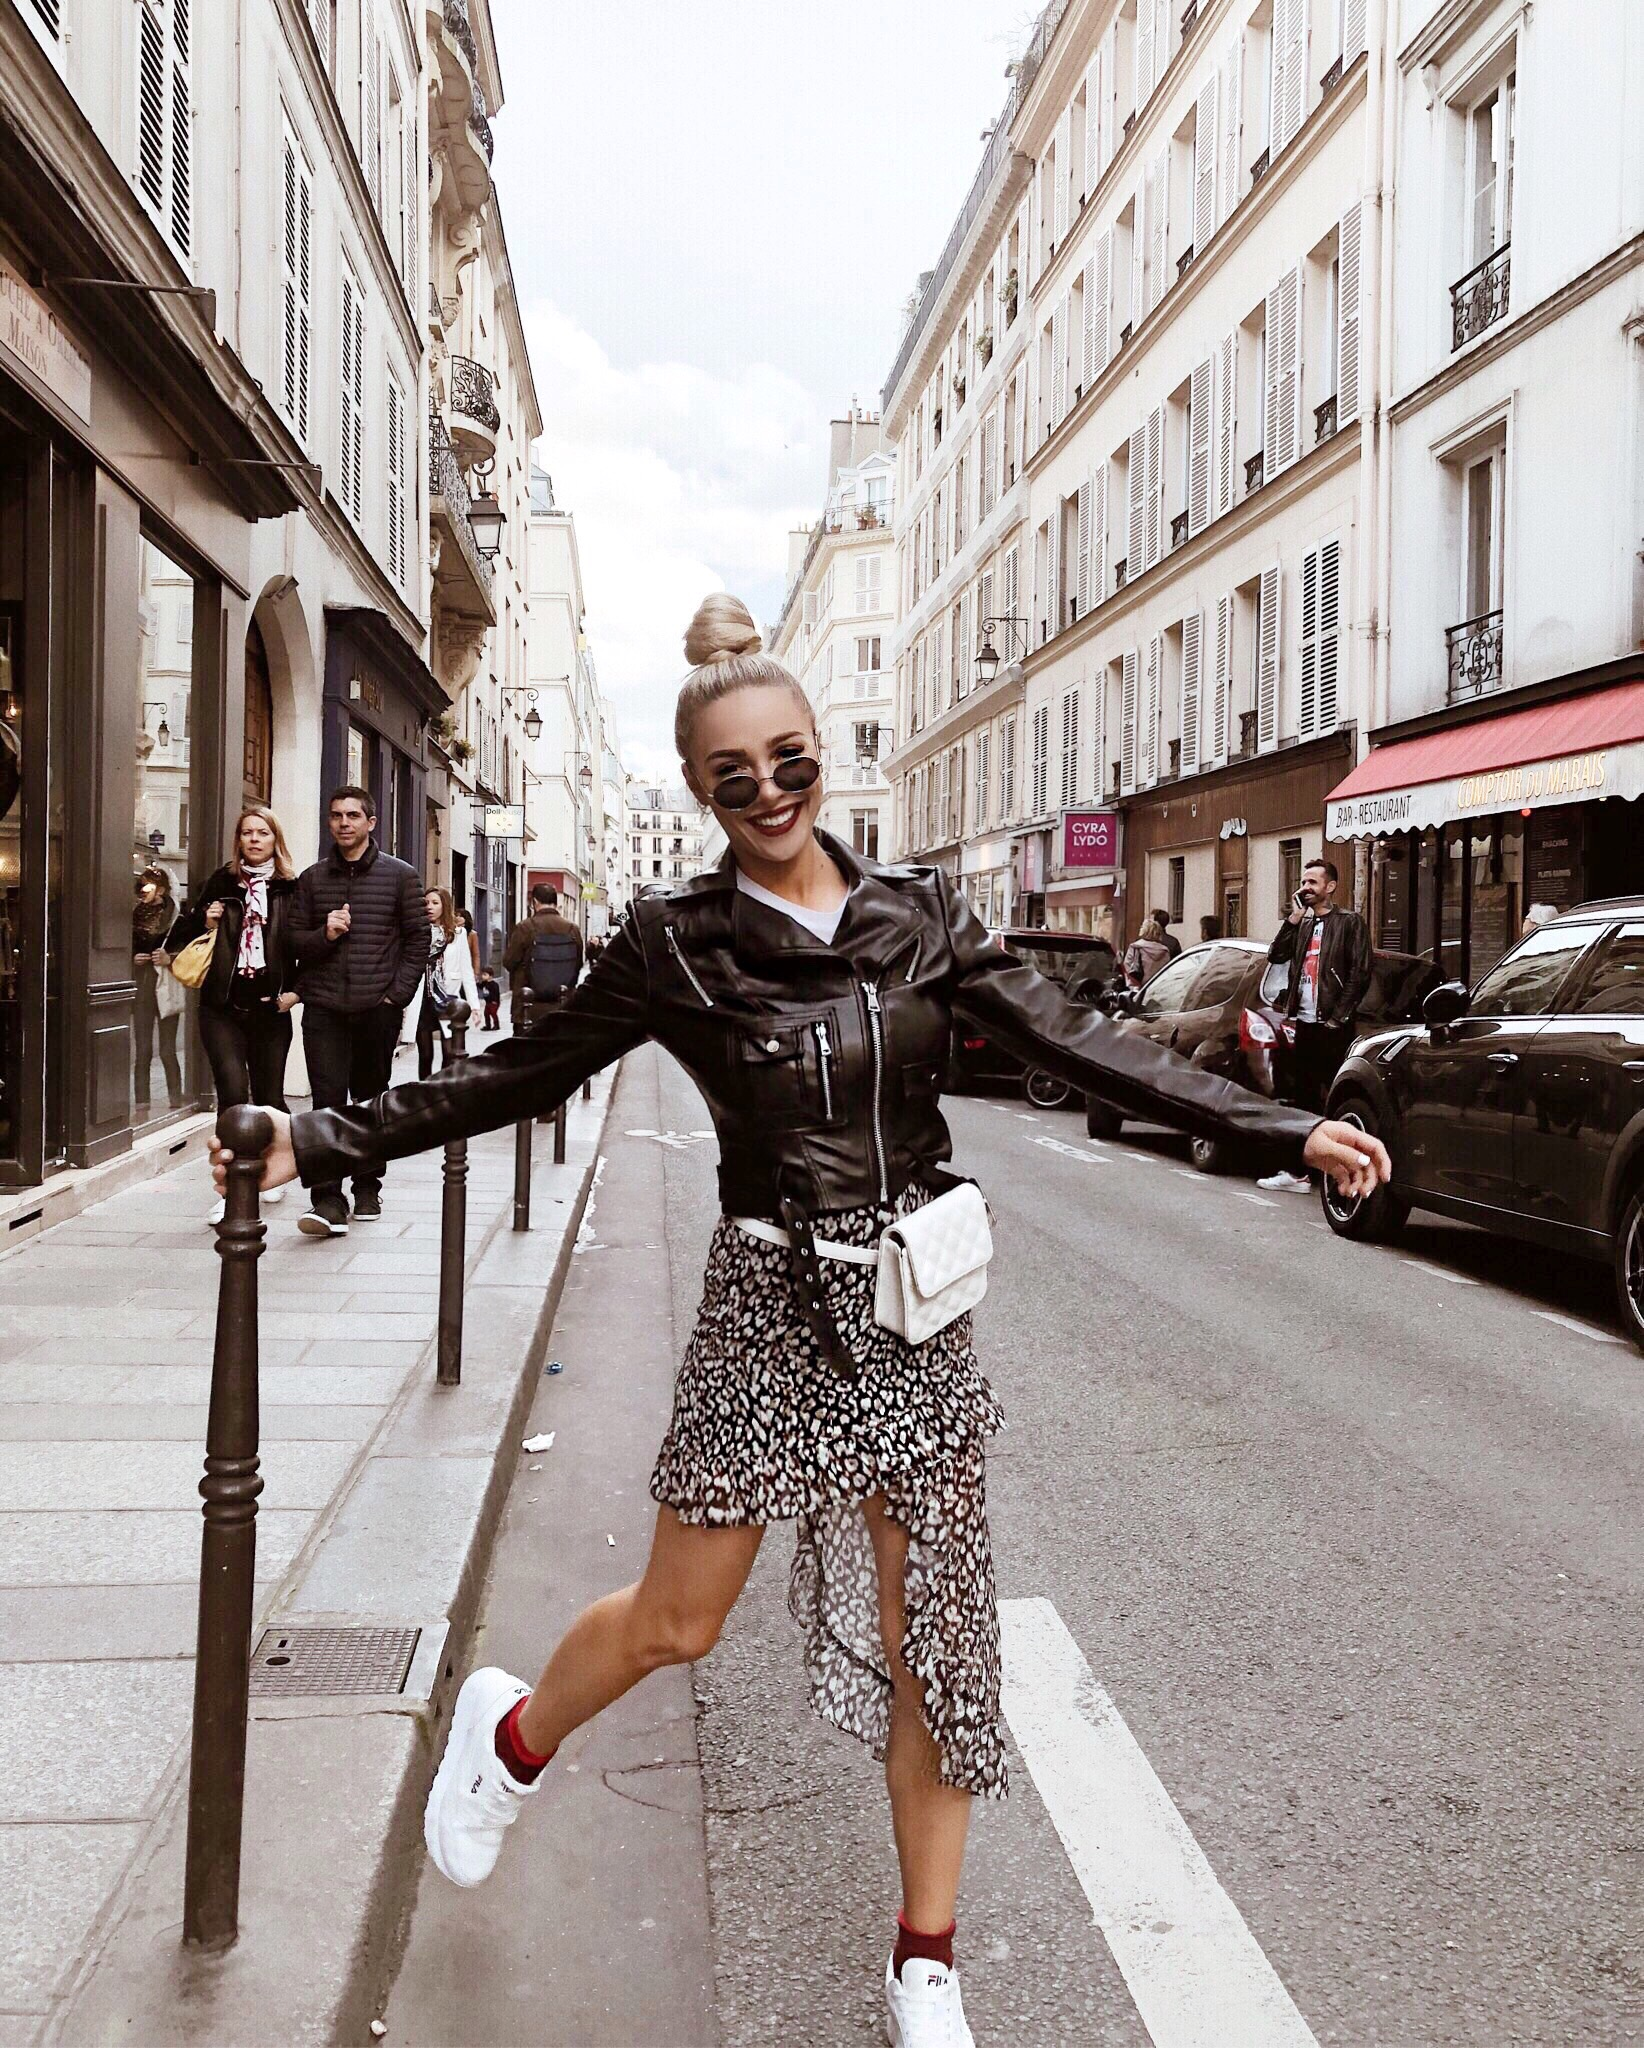 @thestyleseed posing in Paris, France on the street.